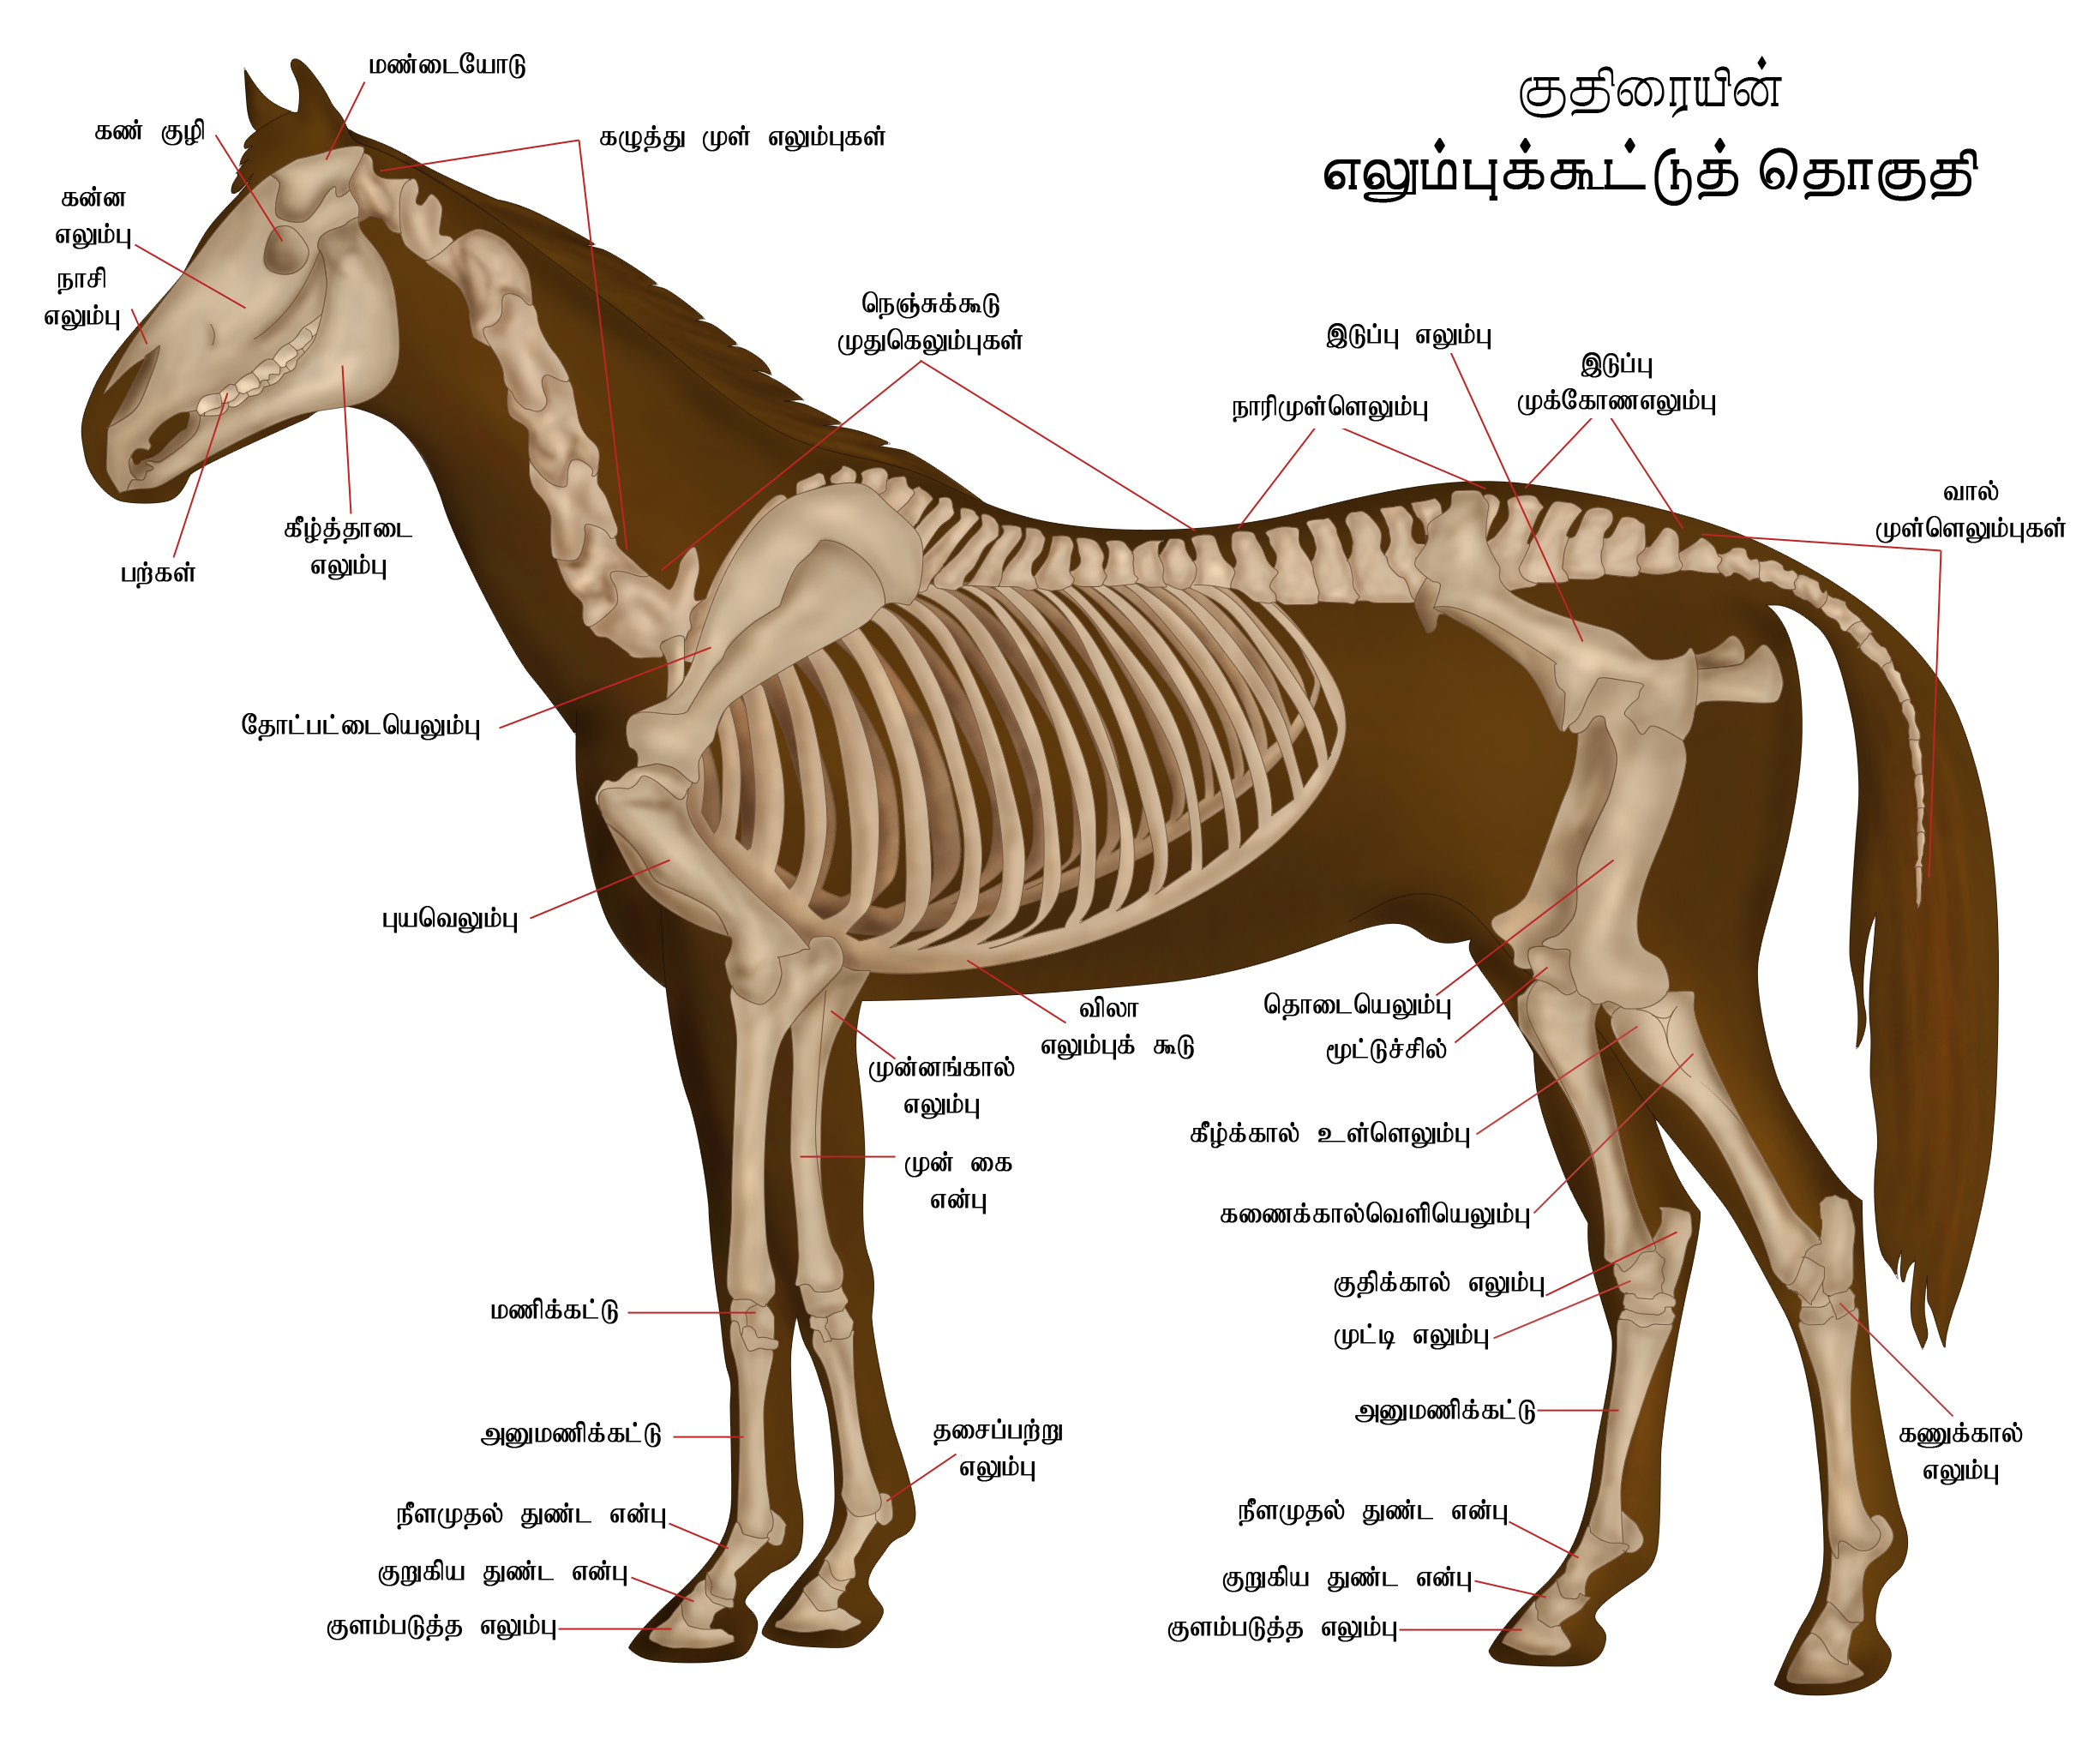 File:Skeletal system of horse (Tamil).png - Wikimedia Commons